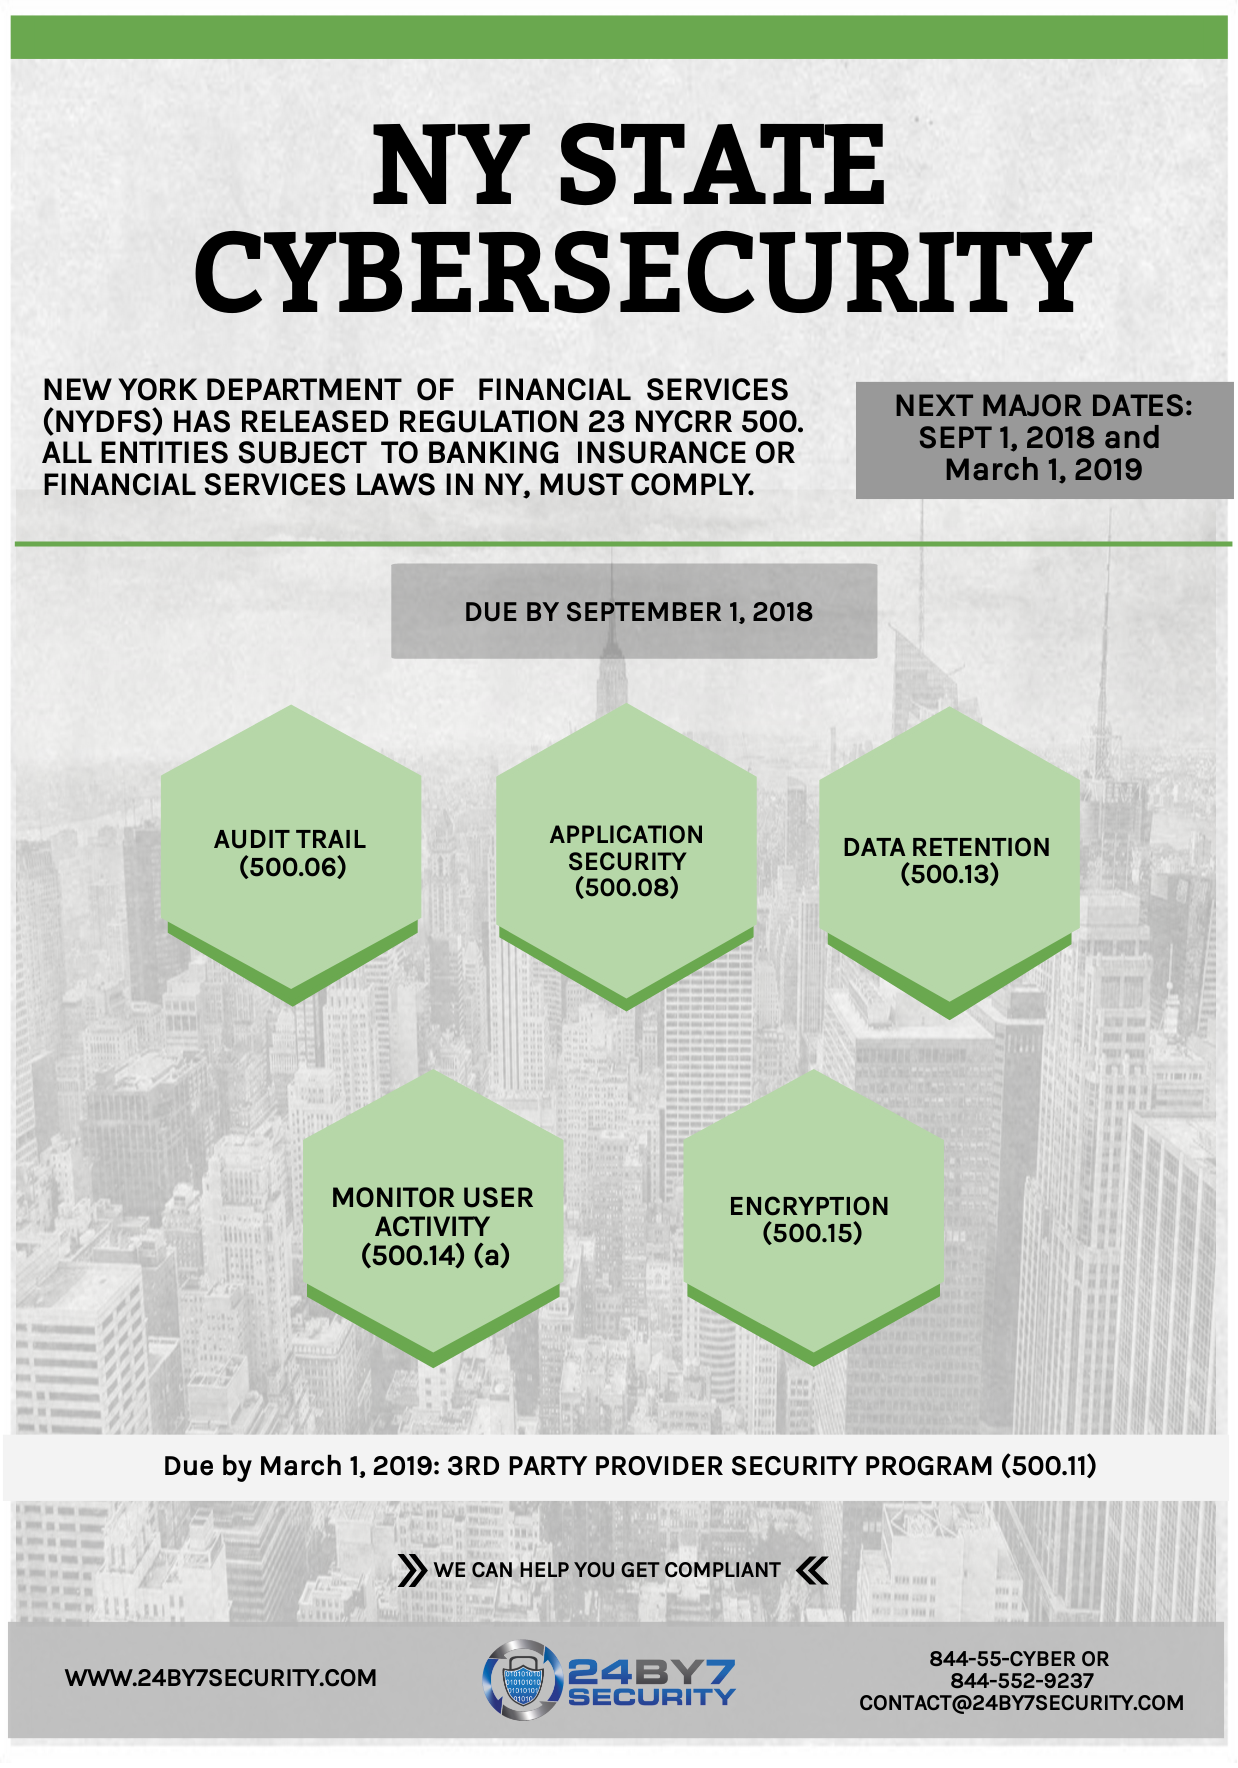 24by7security, NYDFS 23 NYCRR 500 infographic, Phase 2 of NY state Cybersecurity regulations